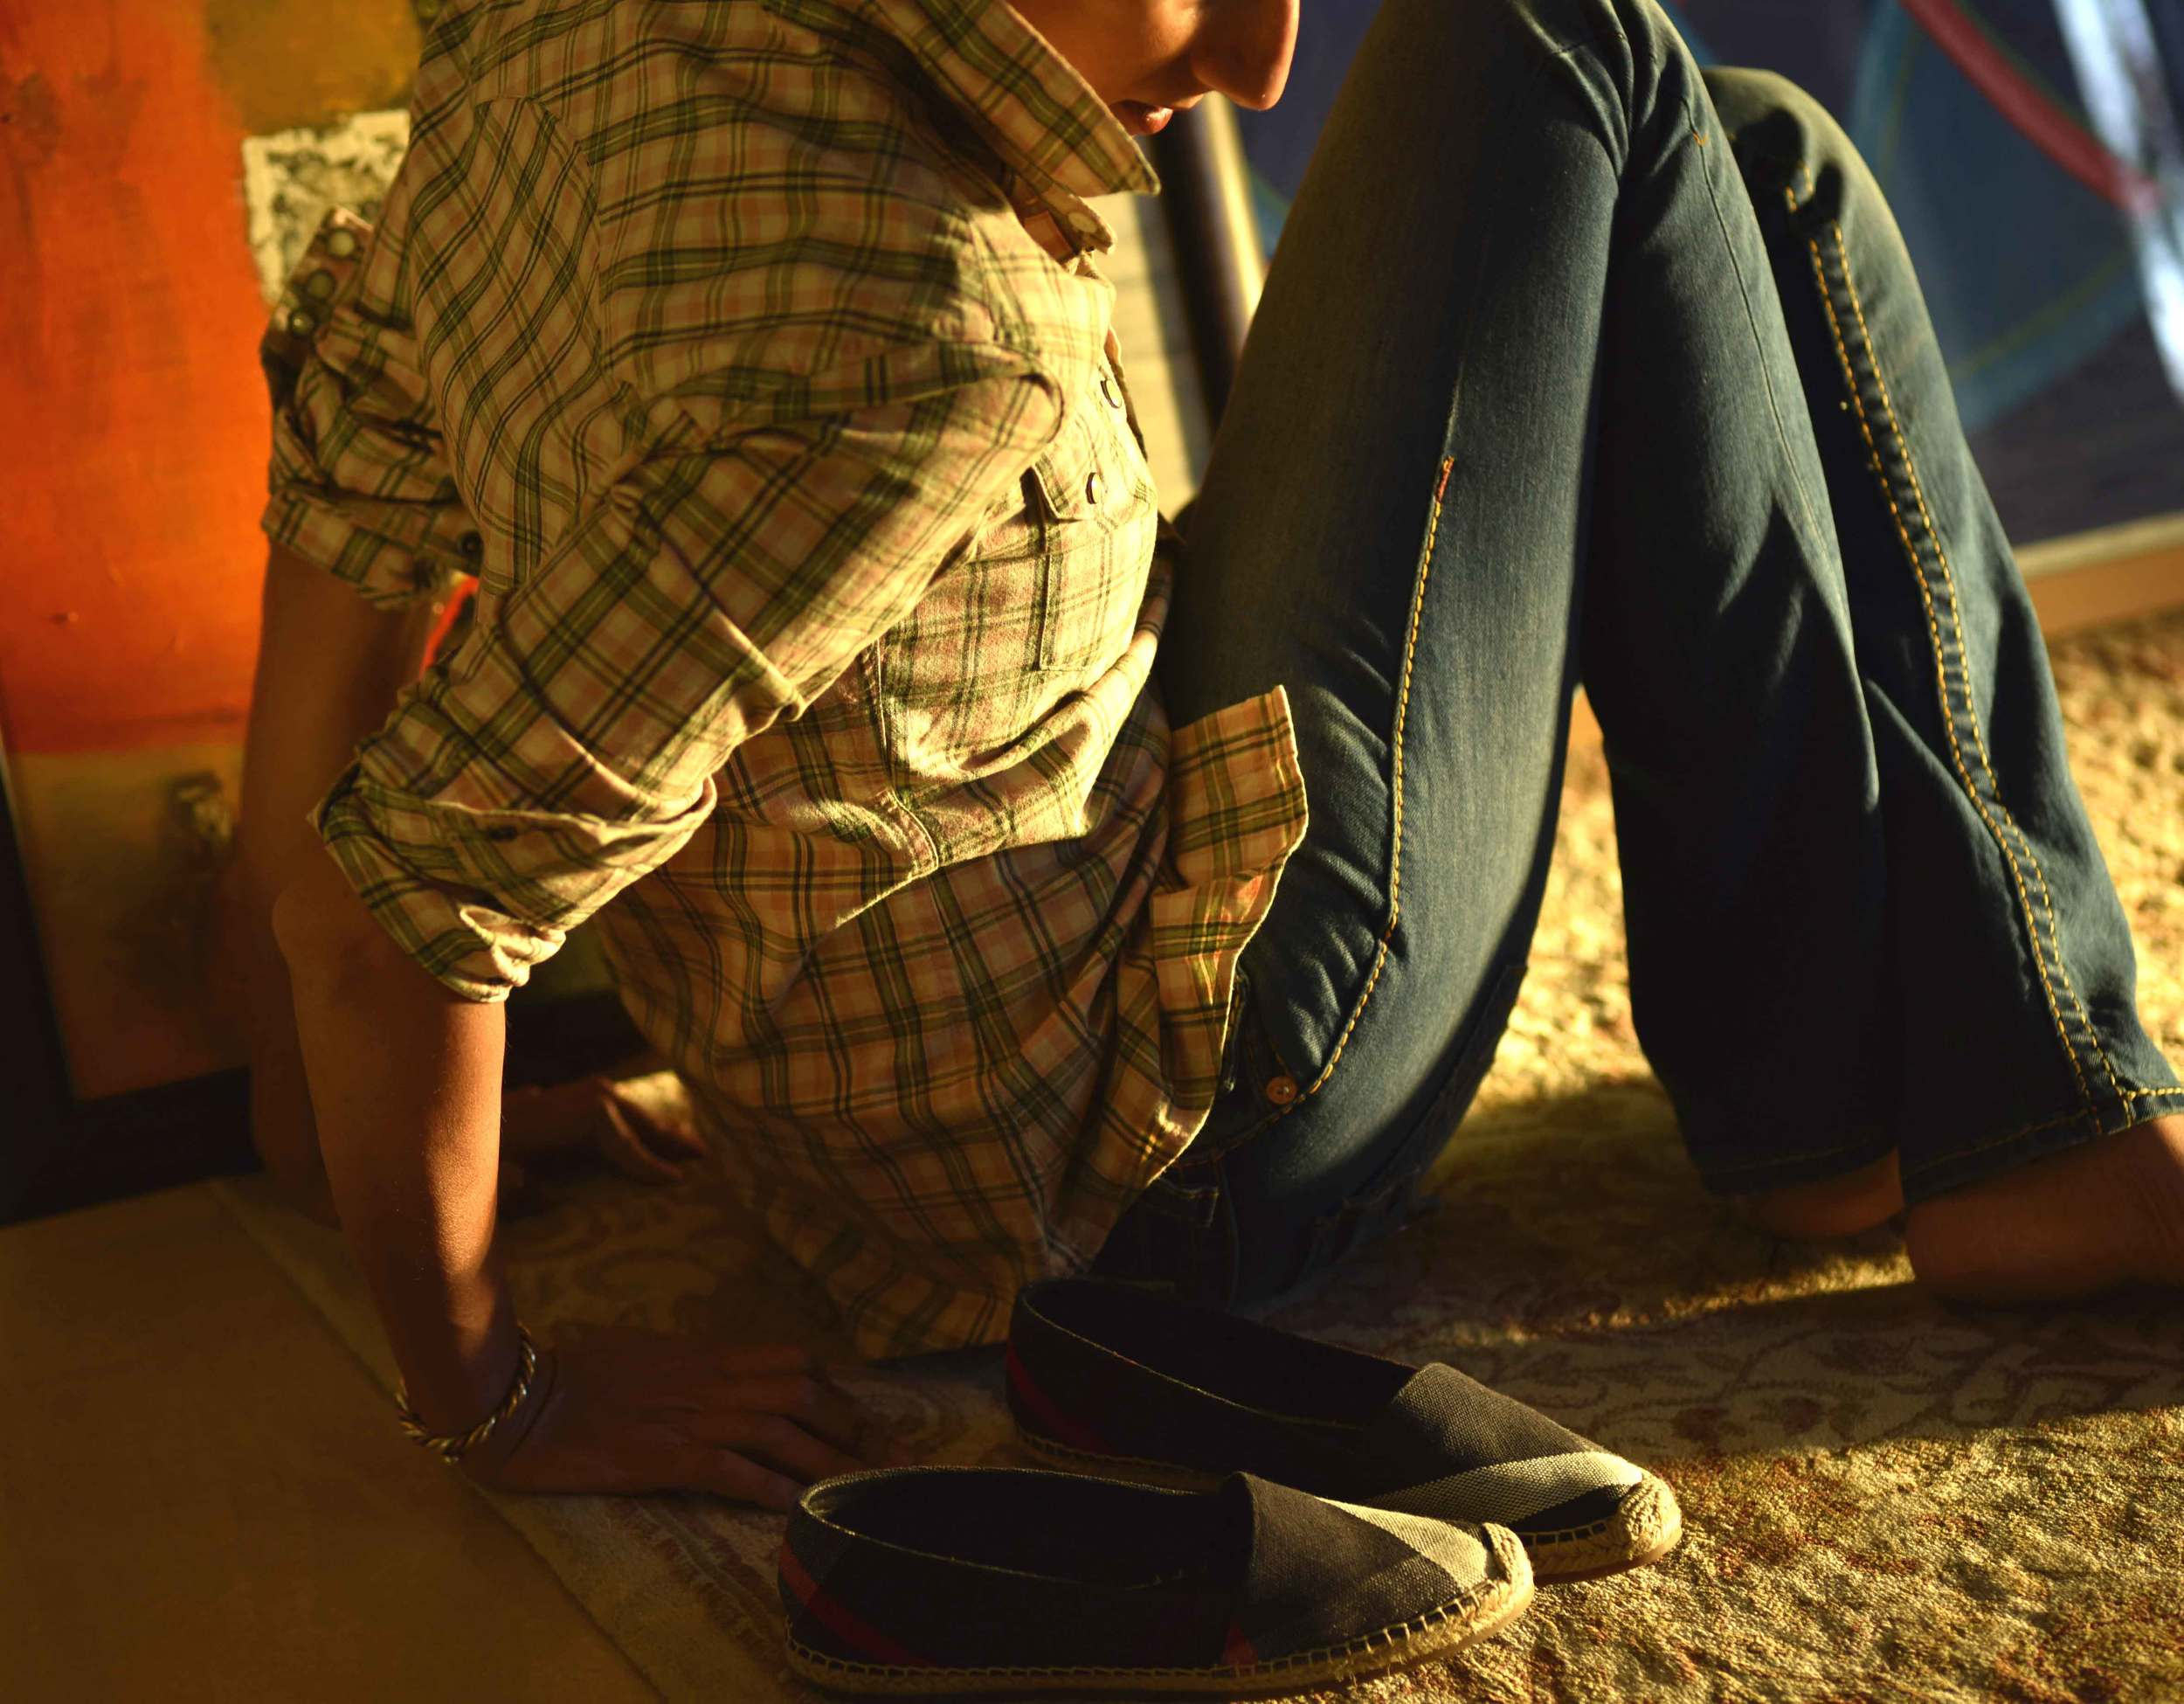 My Ralph Lauren RRL slim fitting western shirt with True Religion jeans and Burberry espadrilles. Image©sourcingstyle.com